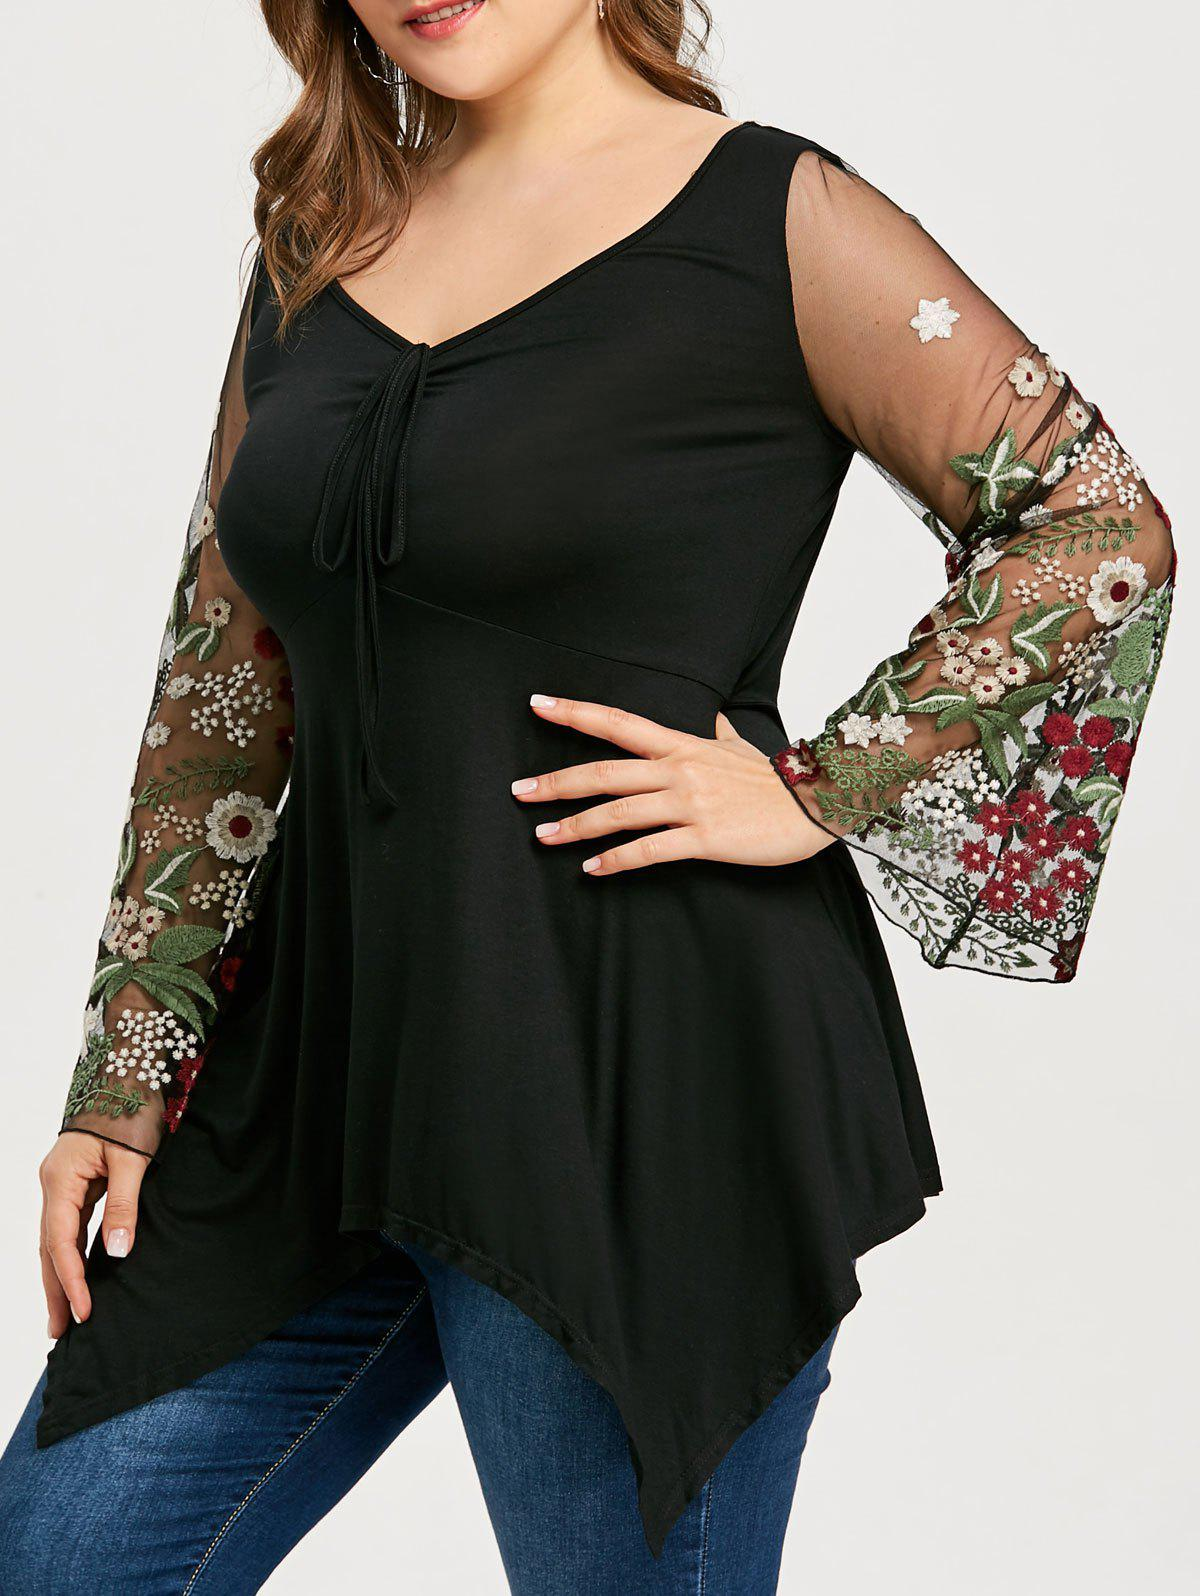 Chic Floral Embroidery Plus Size Tunic T-shirt